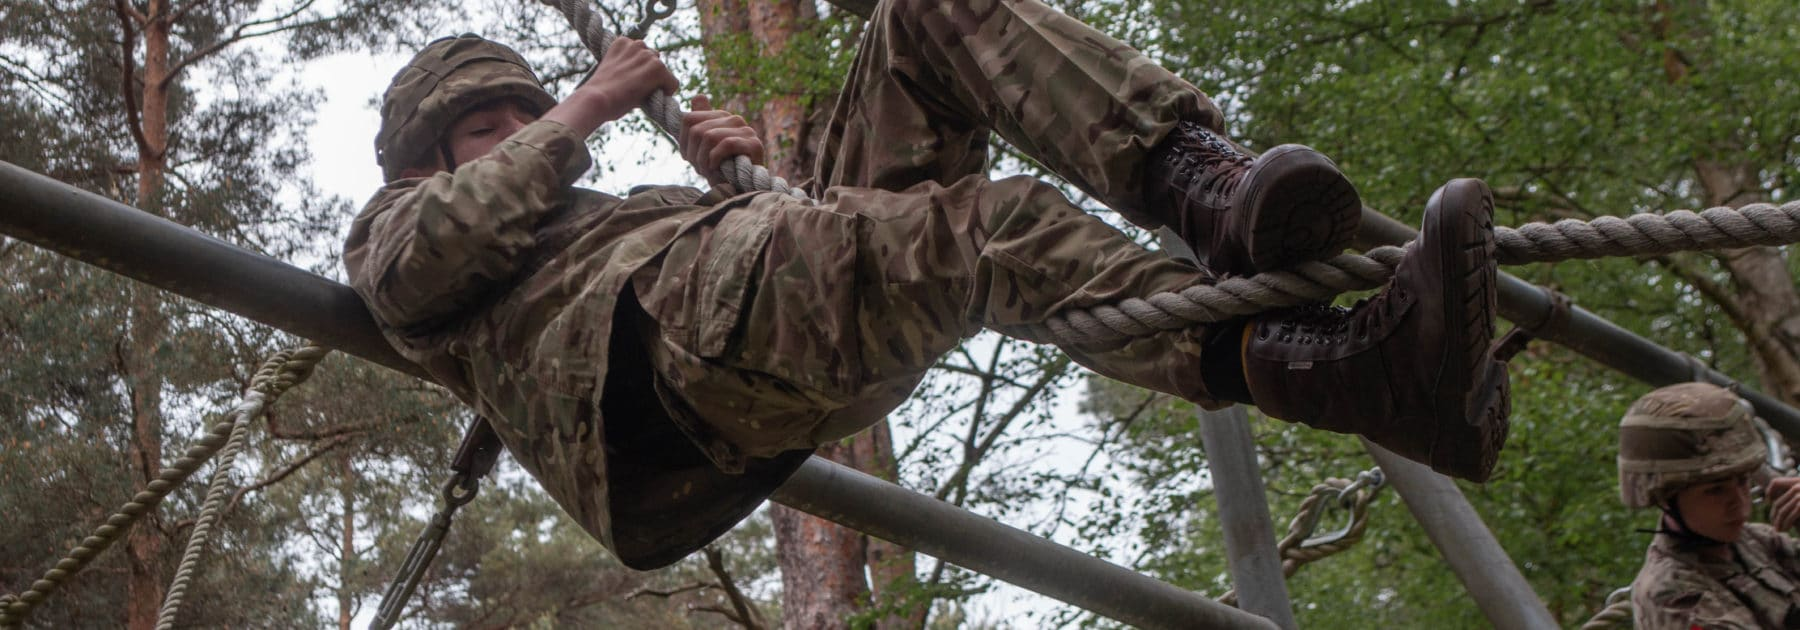 CCF Range & Obstacle Course Day